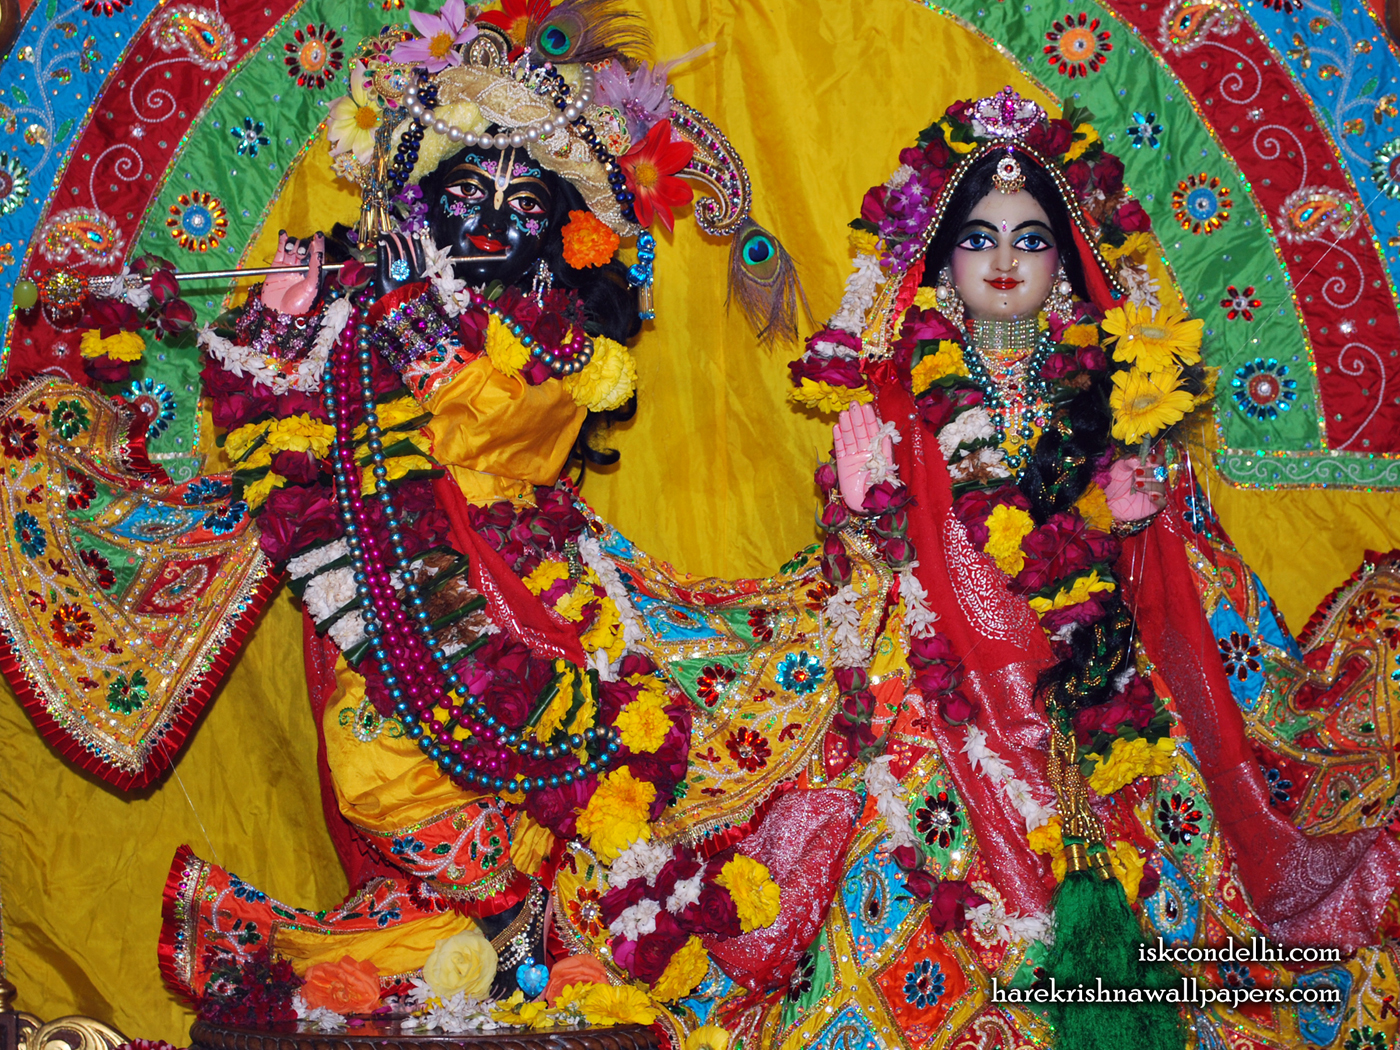 Sri Sri Radha Parthasarathi Wallpaper (011) Size 1400x1050 Download